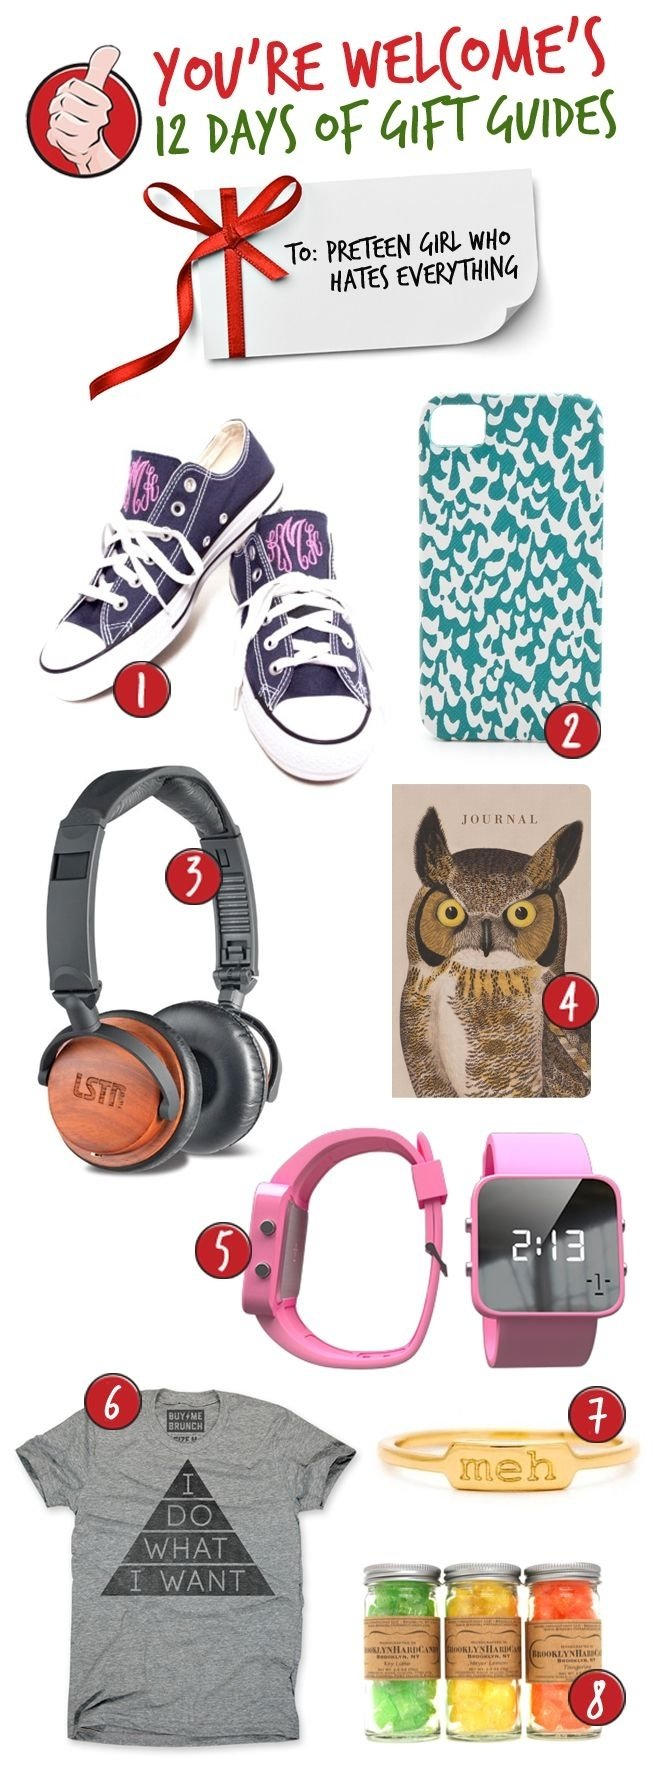 10 Stylish Christmas Gift Ideas For Teenagers 2013 youre welcome 12 days of gift guides gifts for the pre teen